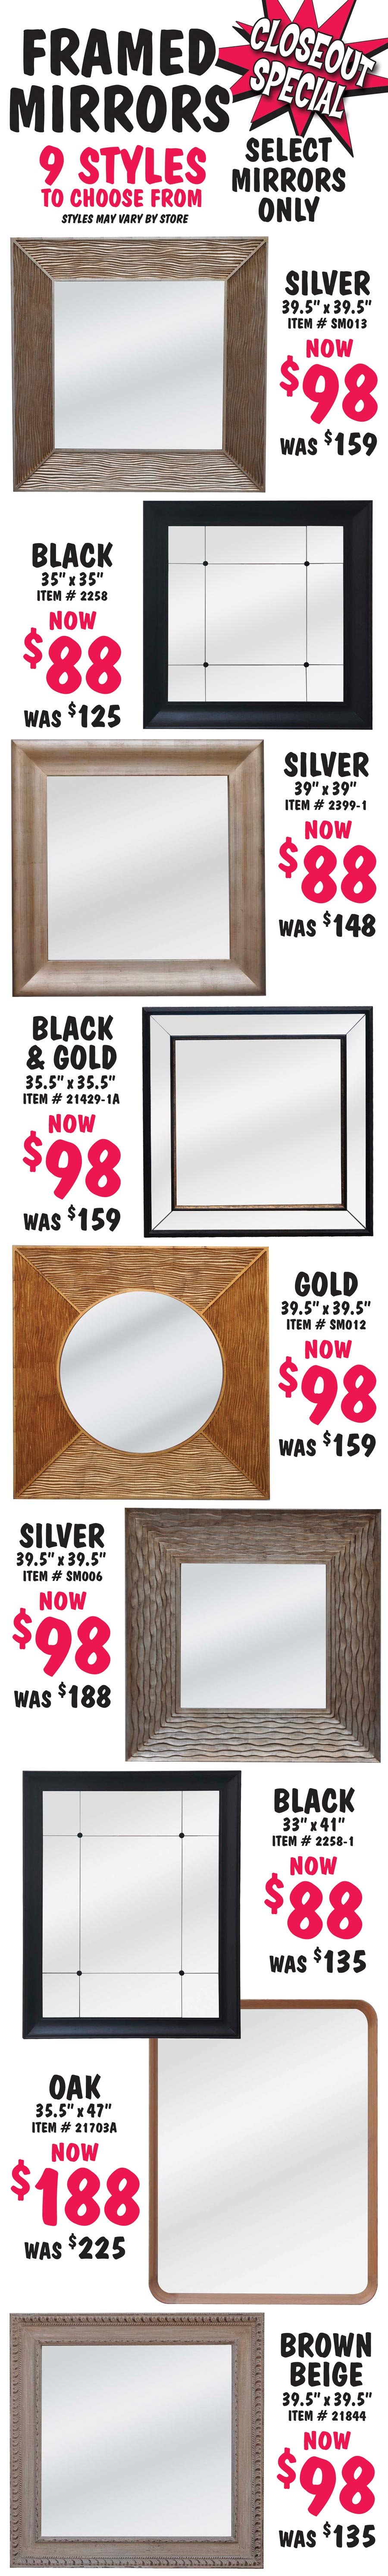 Closeout Mirrors select Mirrors starting at $88